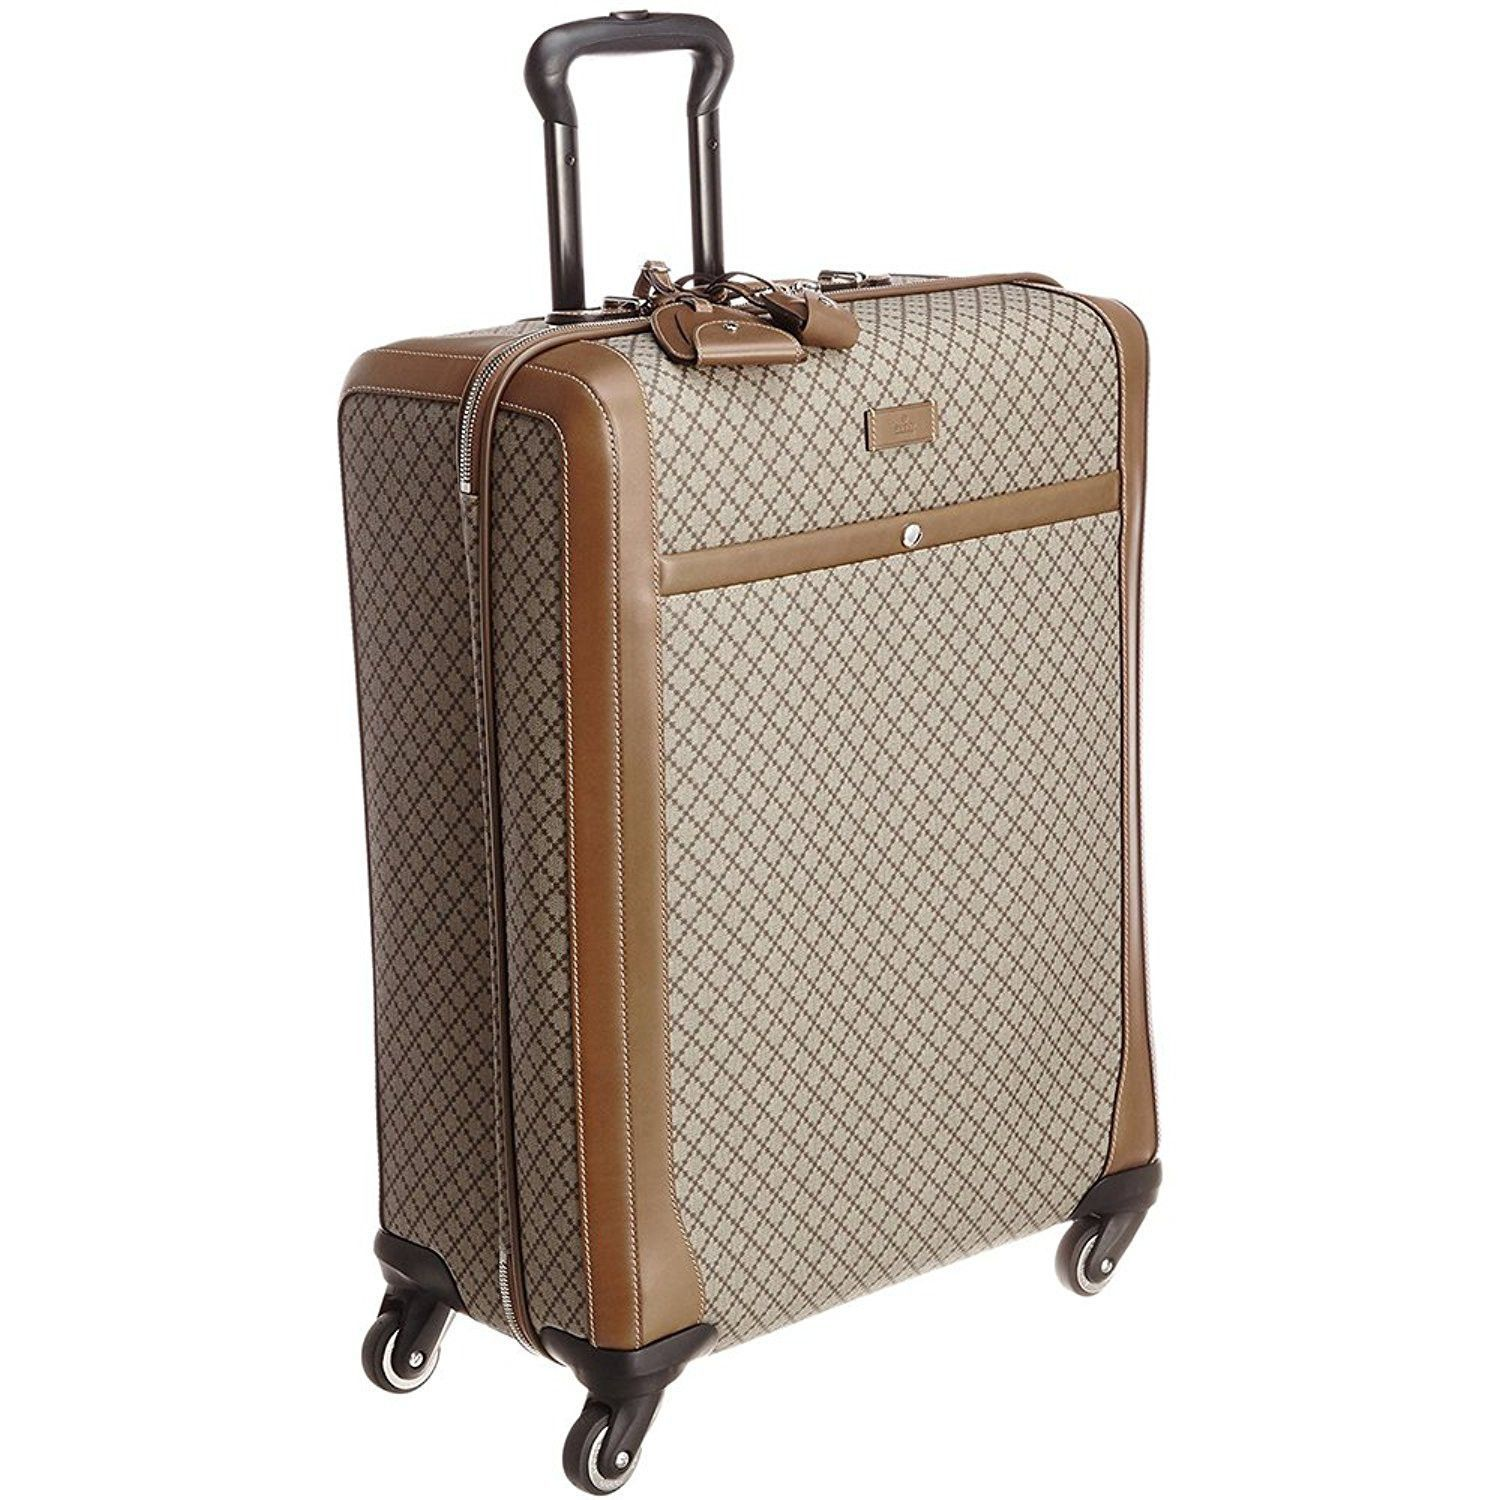 96f96c44575 Gucci Men s Wheel Brown Beige Supreme Canvas Carry-On Suitcase Luggage  293909